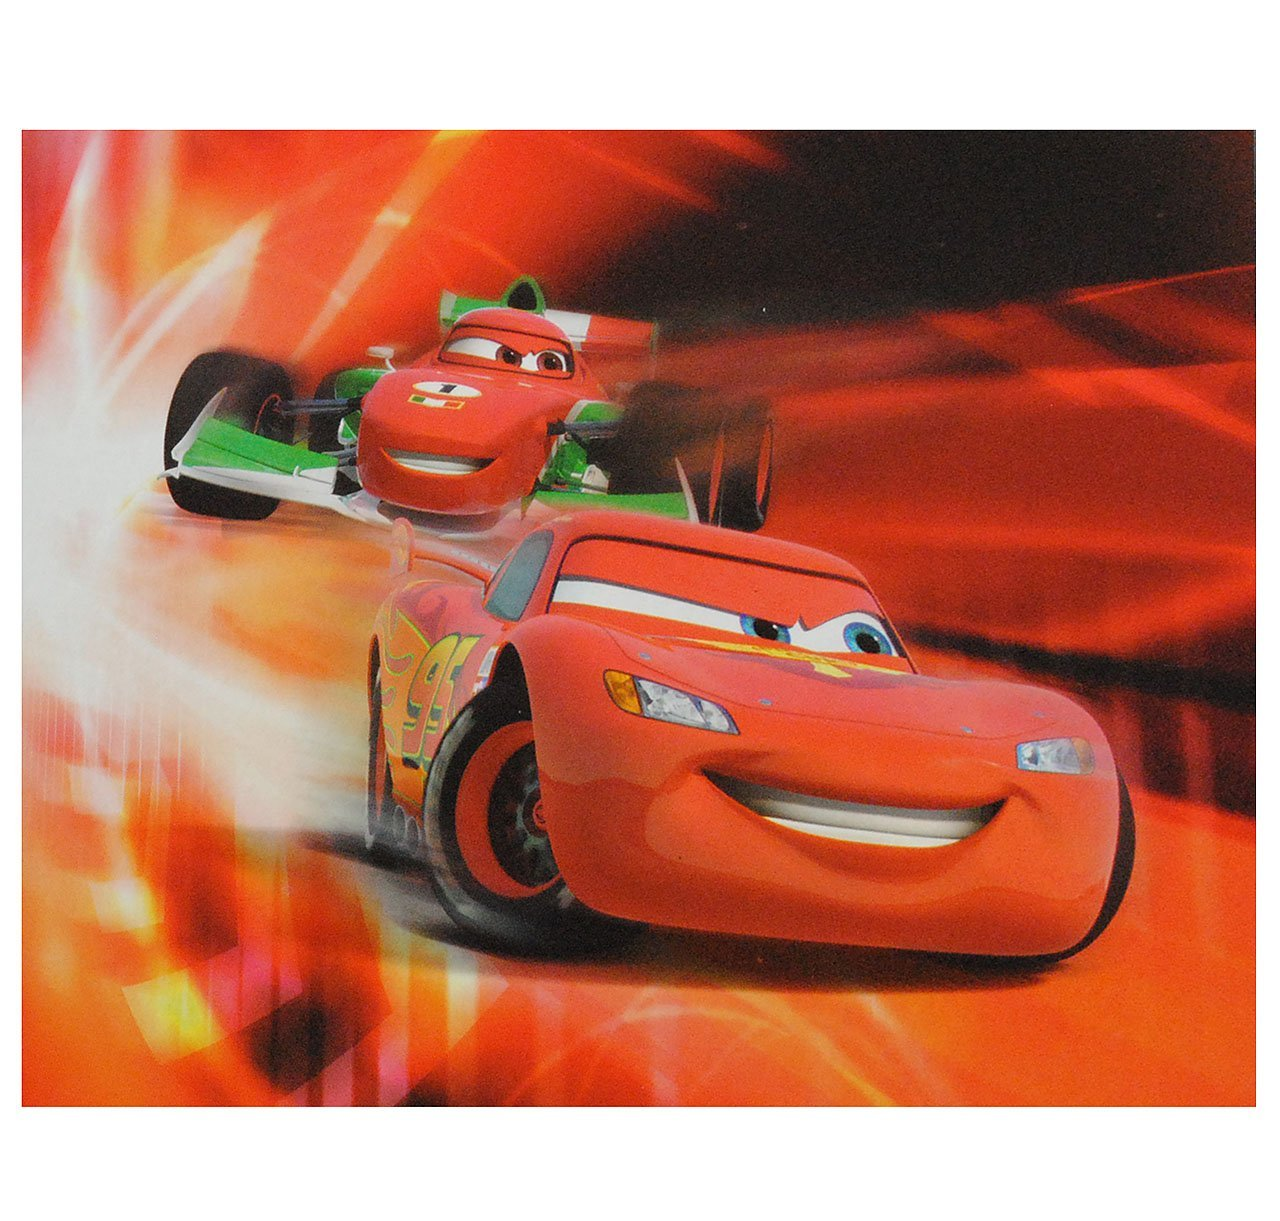 XL Sticker 27,5 cm * 36,5 cm kürzbar - Disney Cars Auto Lightning ...